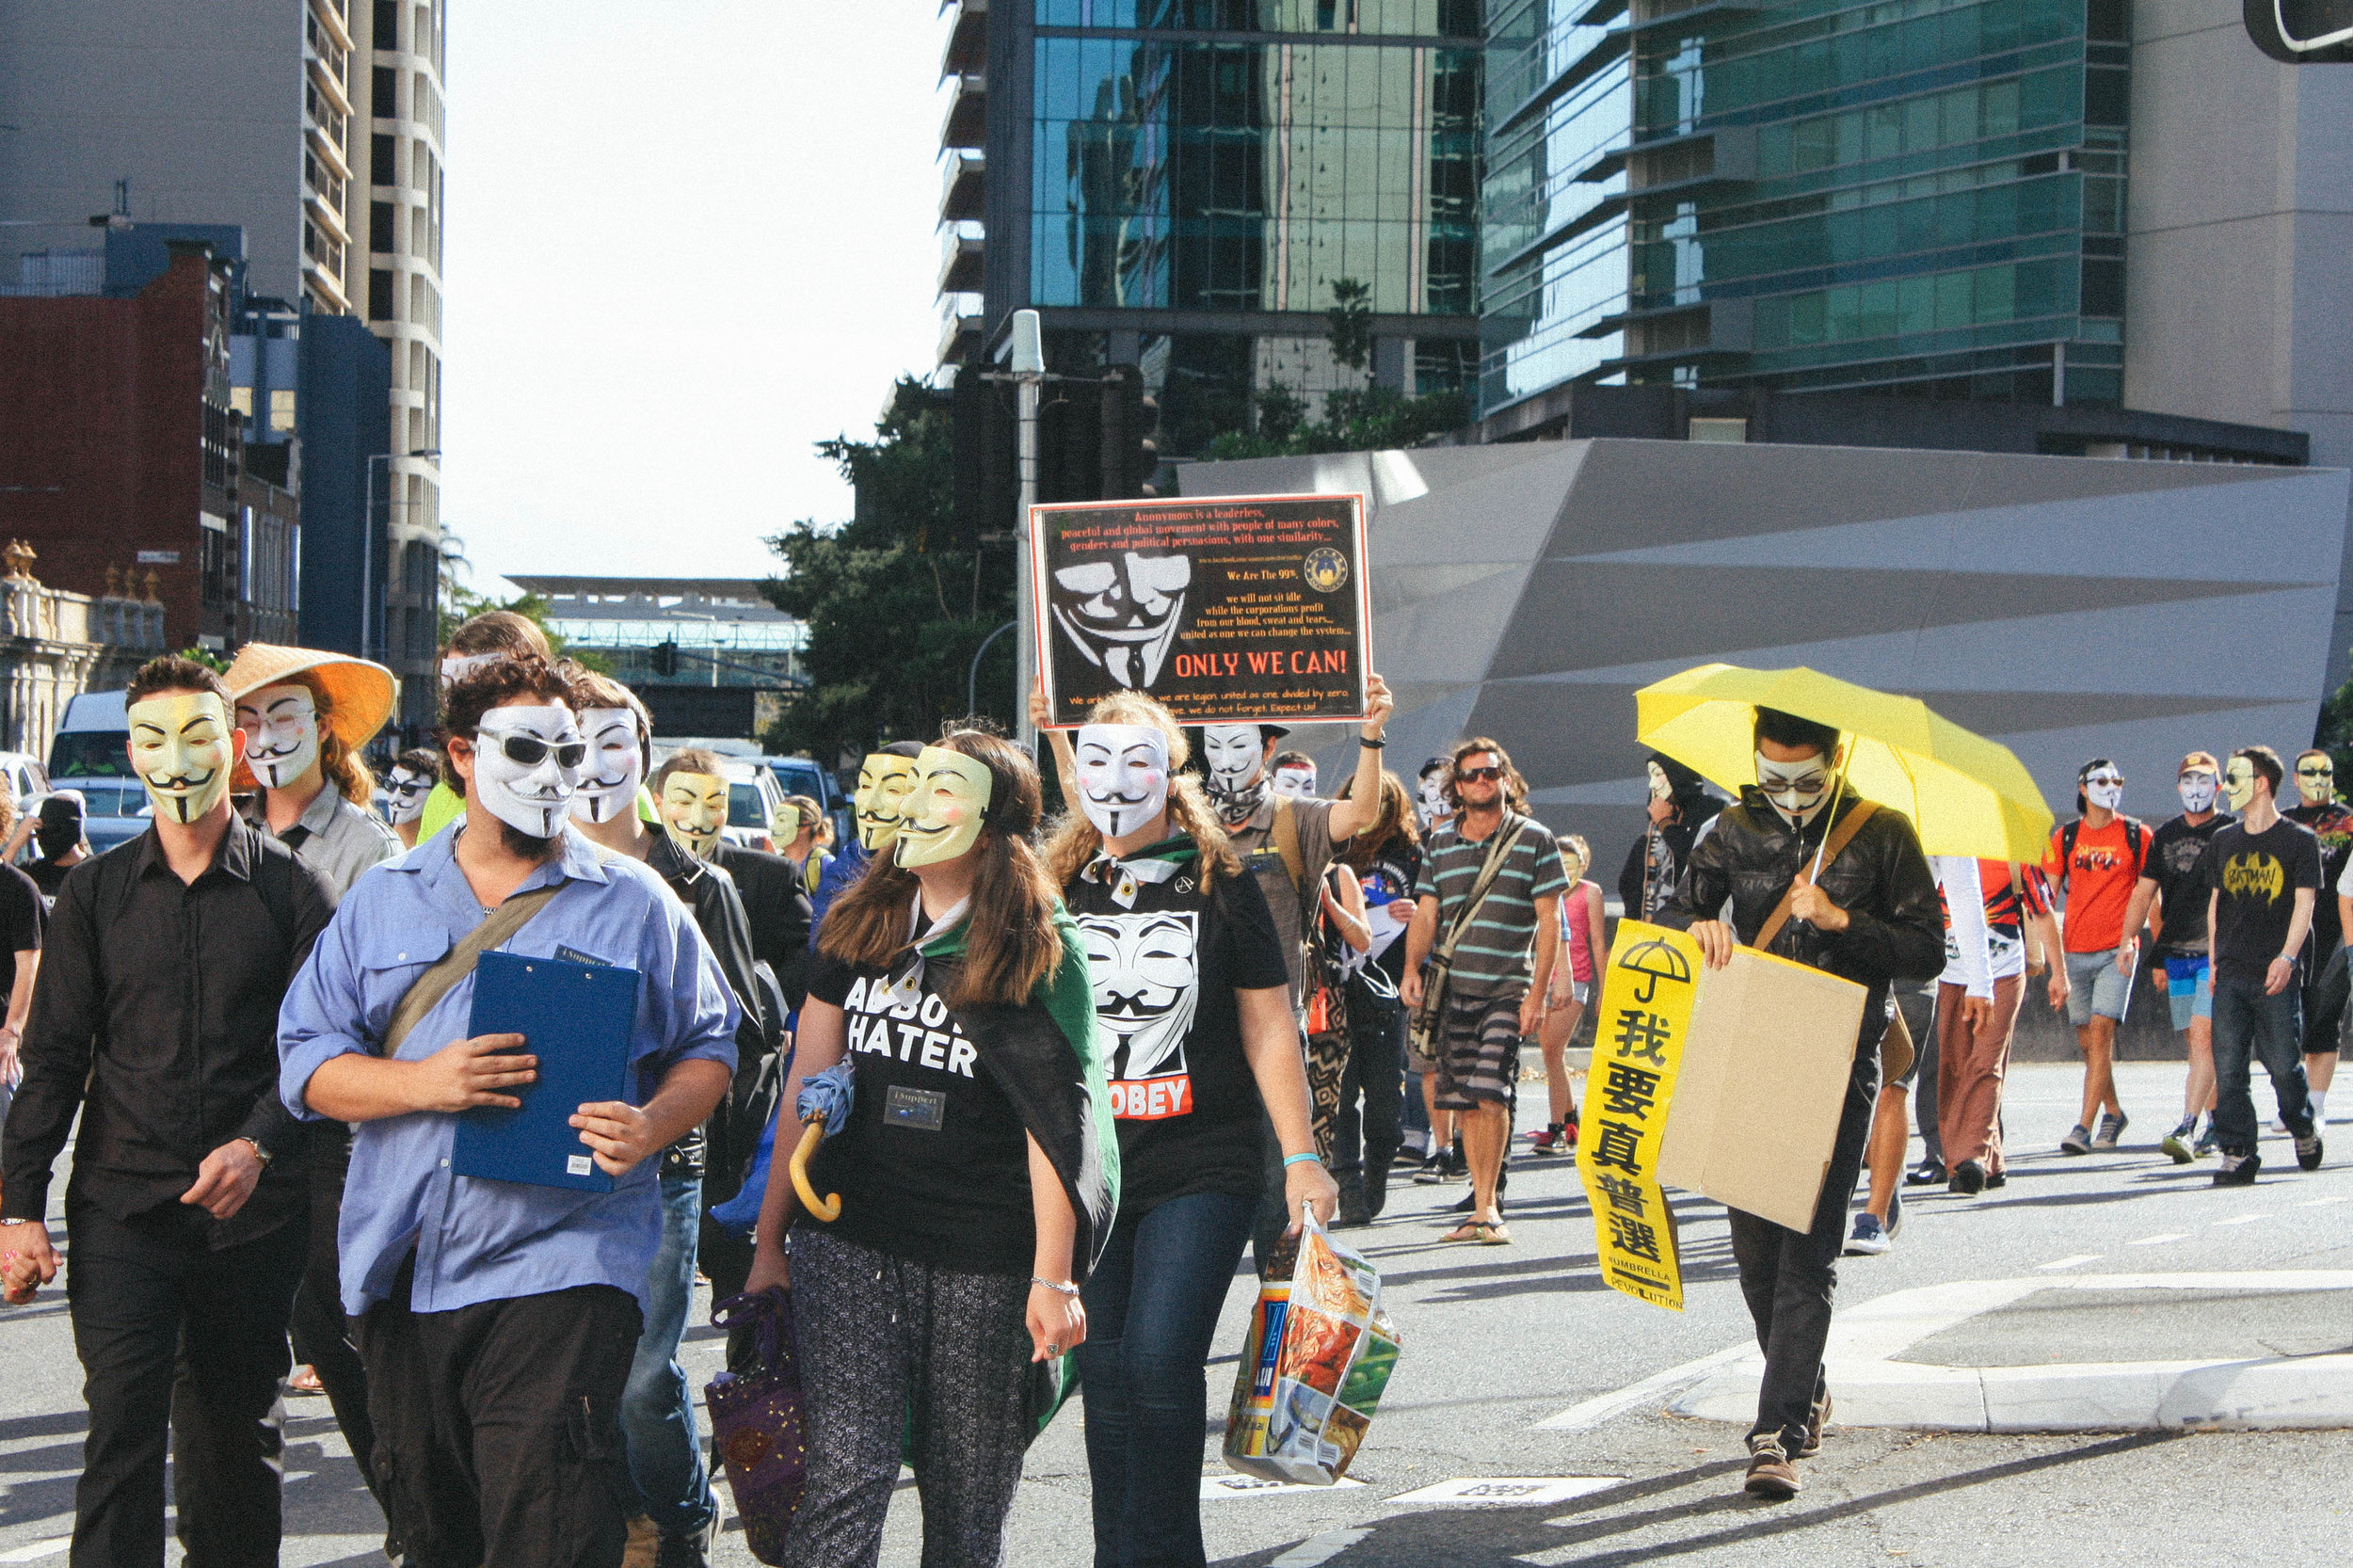 Lesly Lotha_Newzulu_Million_Mask_March_Brisbane_Australia_03